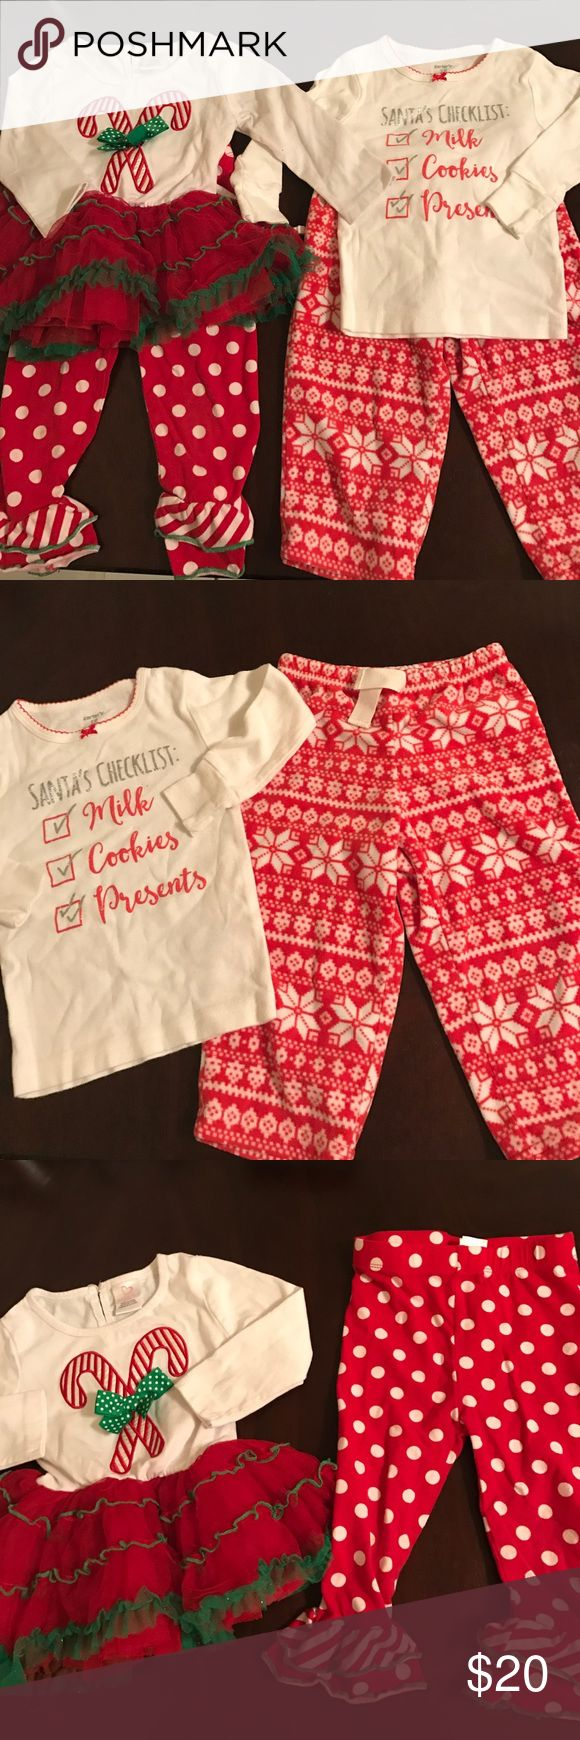 Christmas bundle for 18 months Christmas bundle for 18 months: includes xmas pjs one pair of fleece red bottoms with white snowflake pattern.snug fit long sleeve top with Santas checklist in glitter letters. One xmas morning outfit. Red legging bottoms with white polka dots and ruffled around ankles. Green trim. One long sleeve white top with candy canes and green and white polka dot ribbon. Red Tutu bottom with green trim on each layer. sparkles throughout. Excellent condition. Matching…